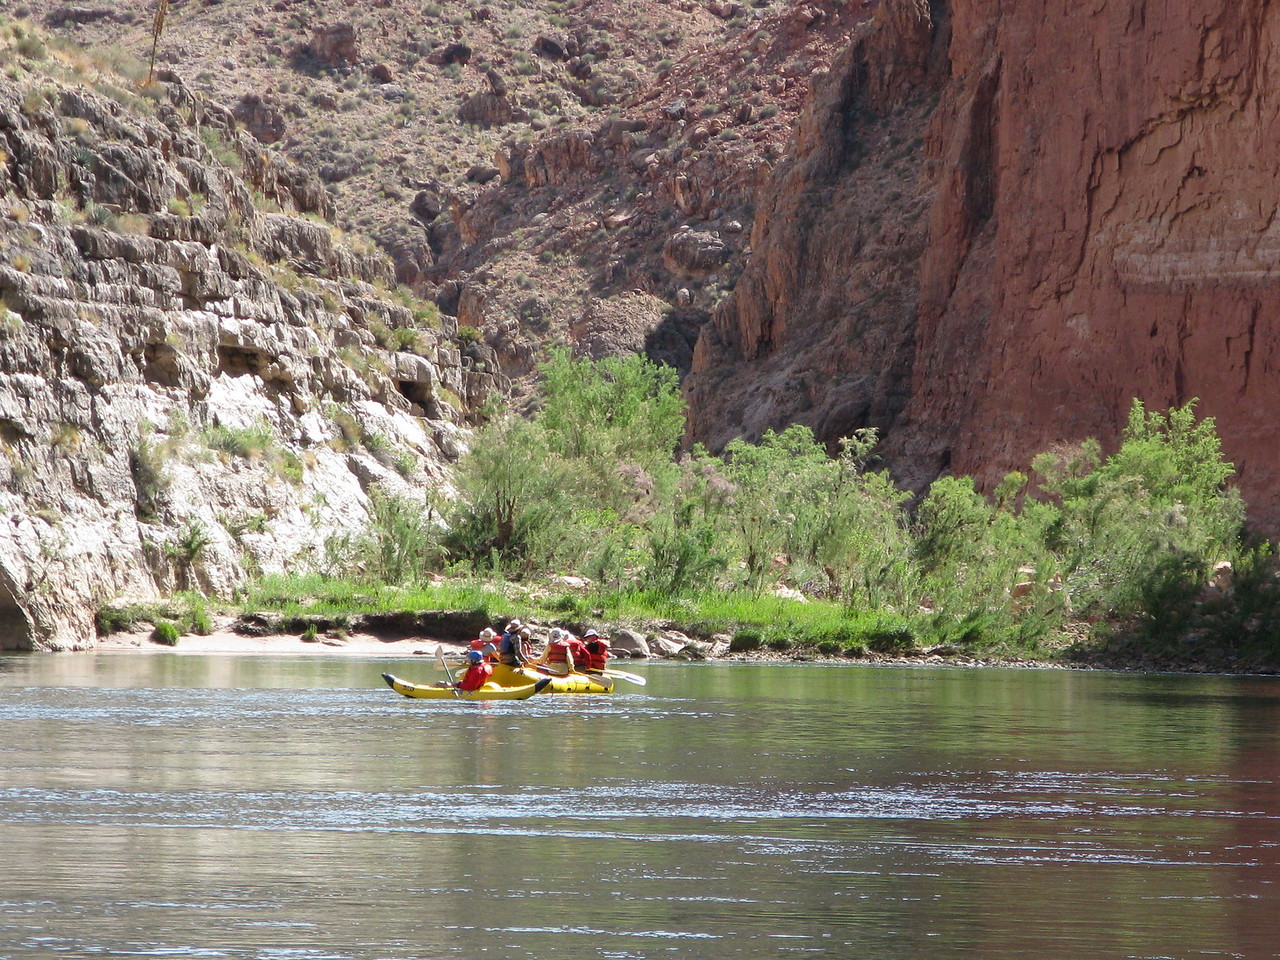 A kayak and raft drifting in Marble Canyon.